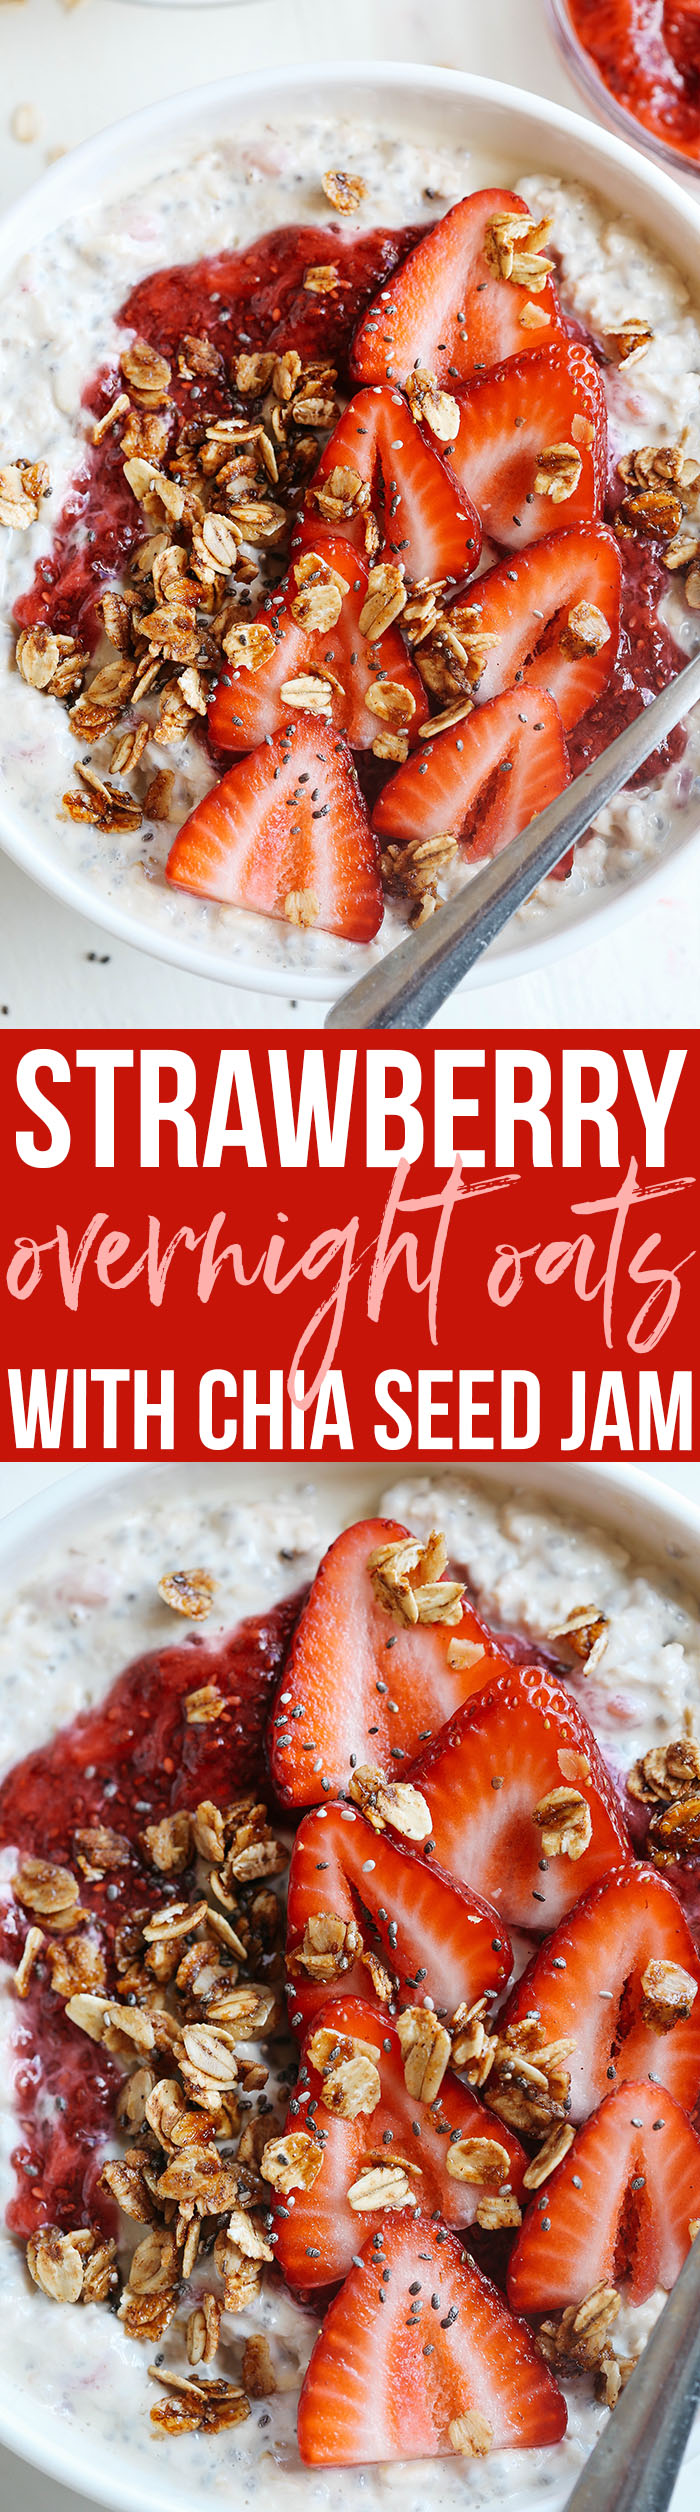 These Strawberry Chia Overnight Oats with homemade chia seed jam are easily made in just minutes the night before giving you a delicious healthy breakfast to enjoy as soon as you wake up!